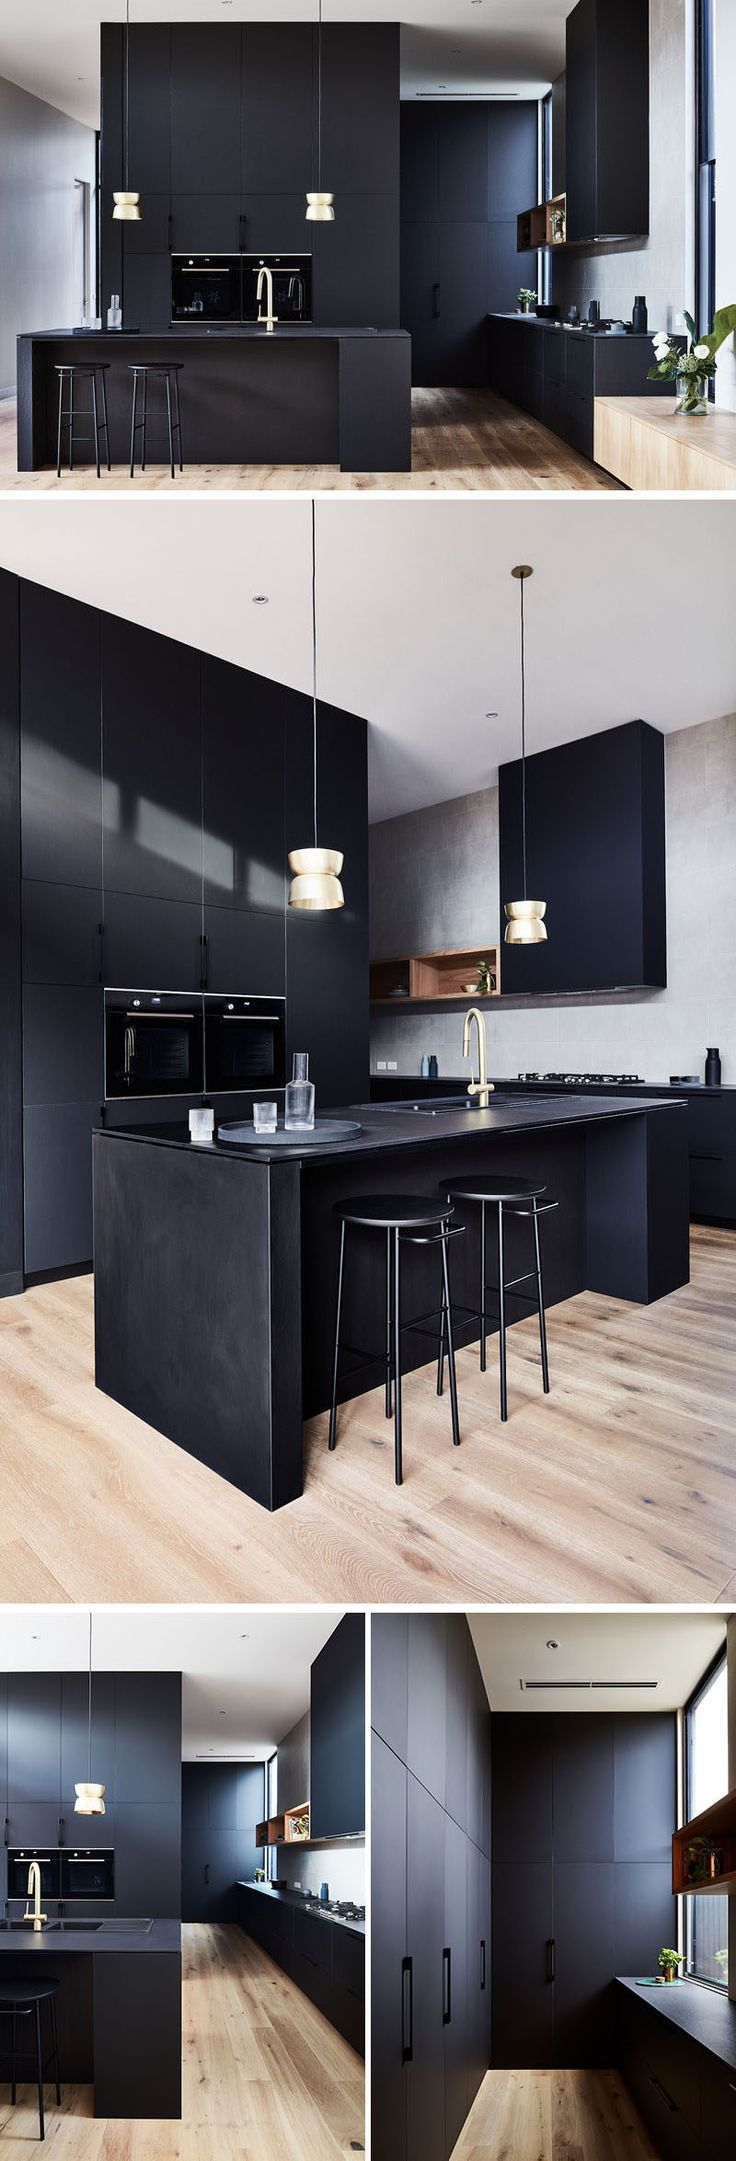 A matte black kitchen with minimal hardware makes a statement against the white walls, while brass fittings add a touch of glamour. #MatteBlack #BlackKitchen #ModernKitchen